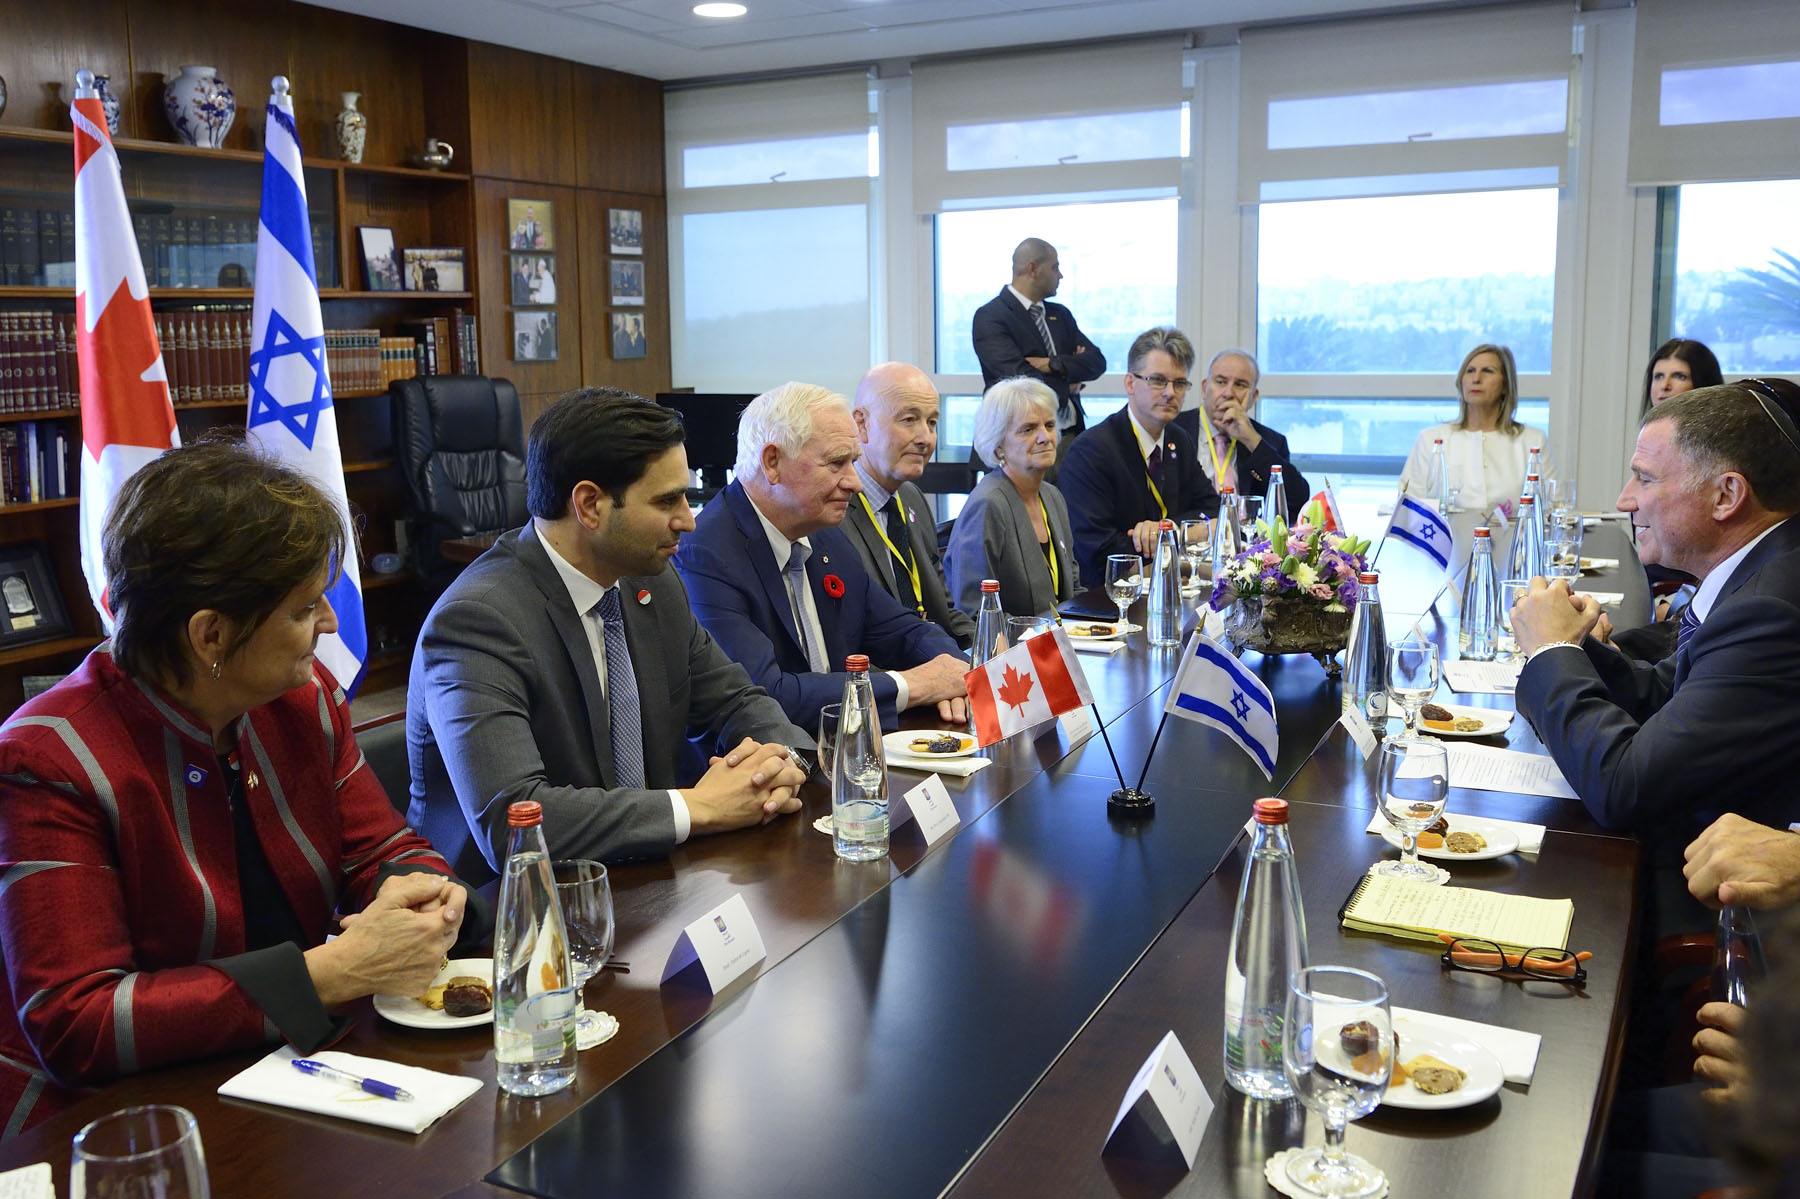 He then met with His Excellency Yuli-Yoel Edelstein, Speaker of the Knesset.